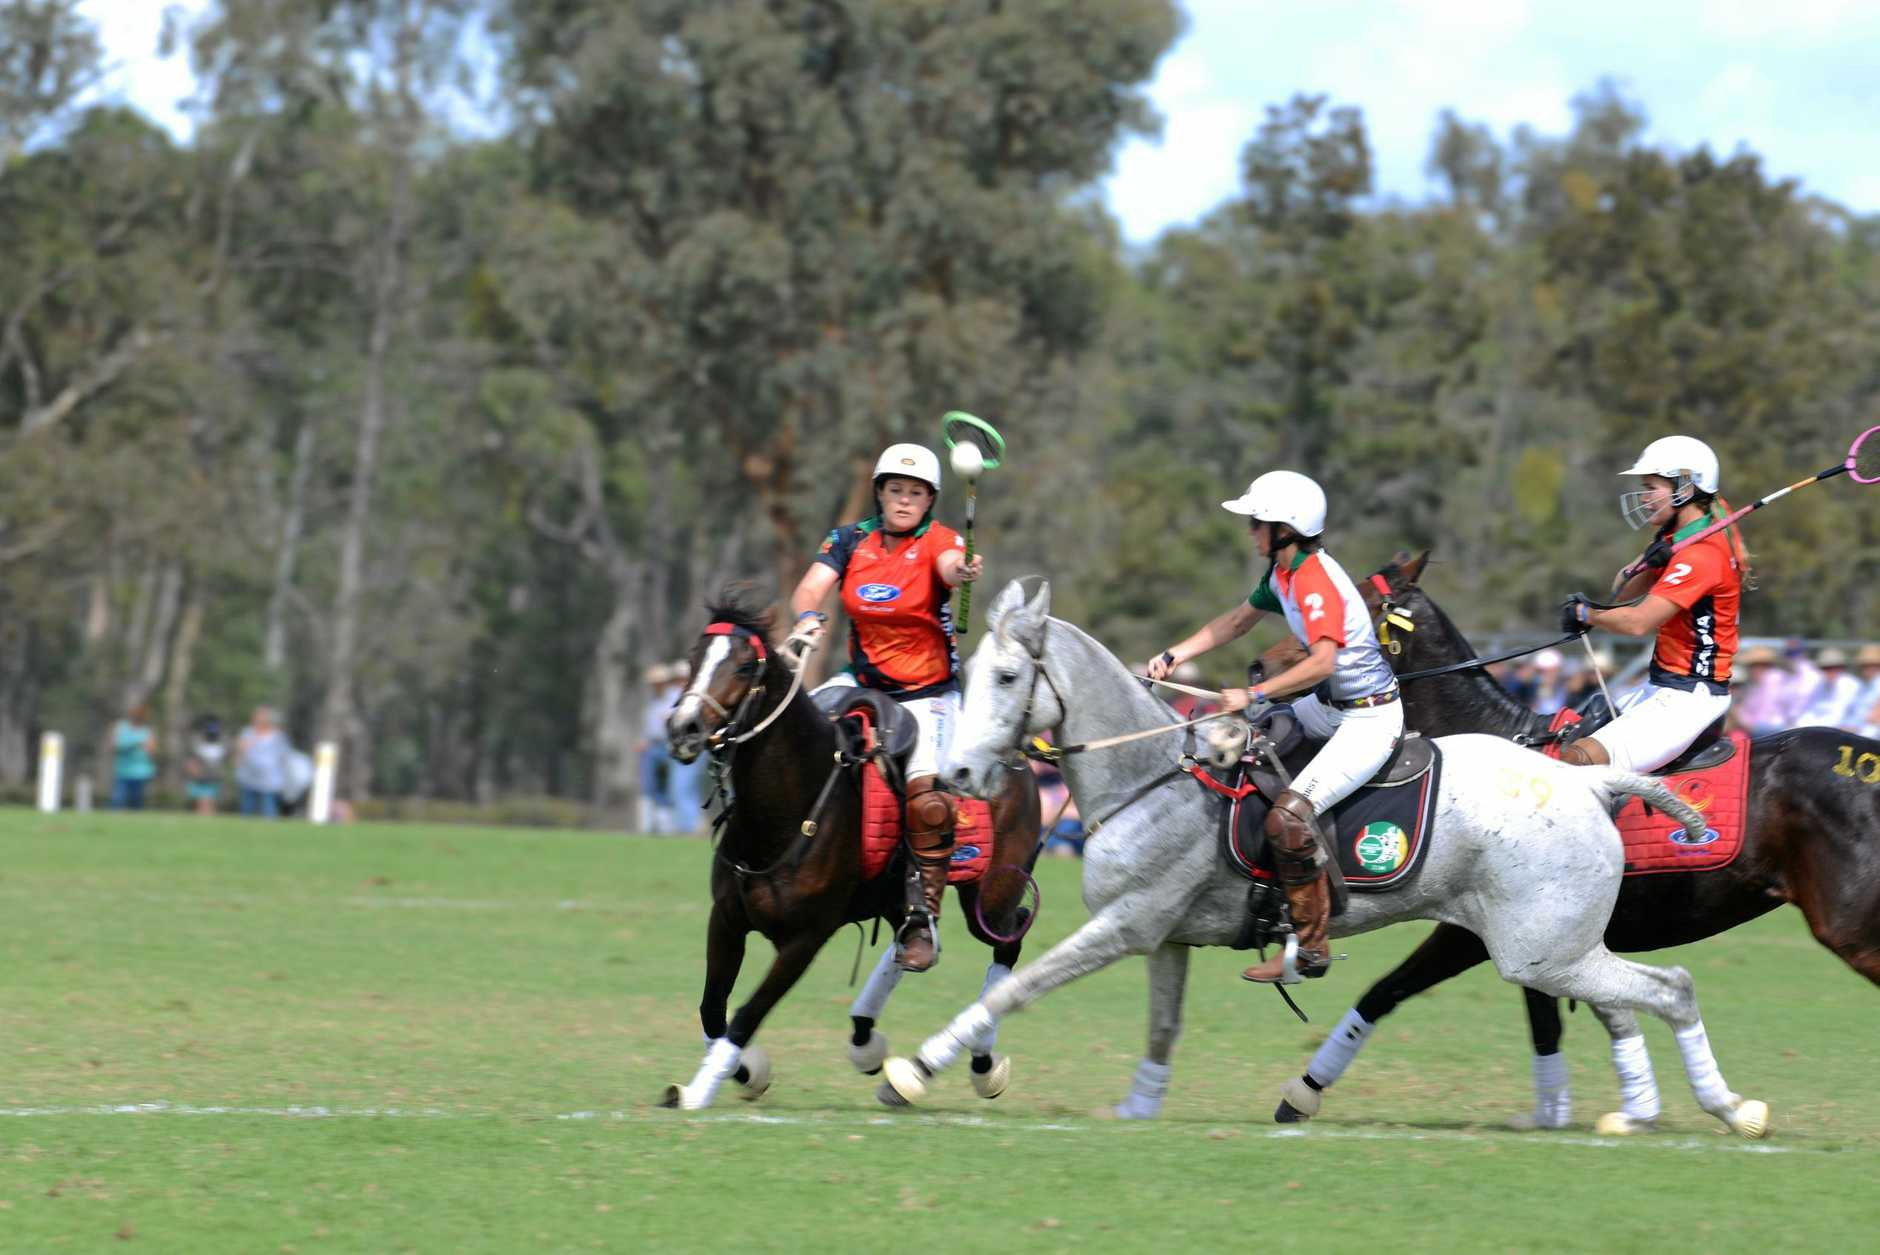 Kelly Krynauw (left) in possession for Zambia on day 2 of the Adina Polocrosse World Cup.